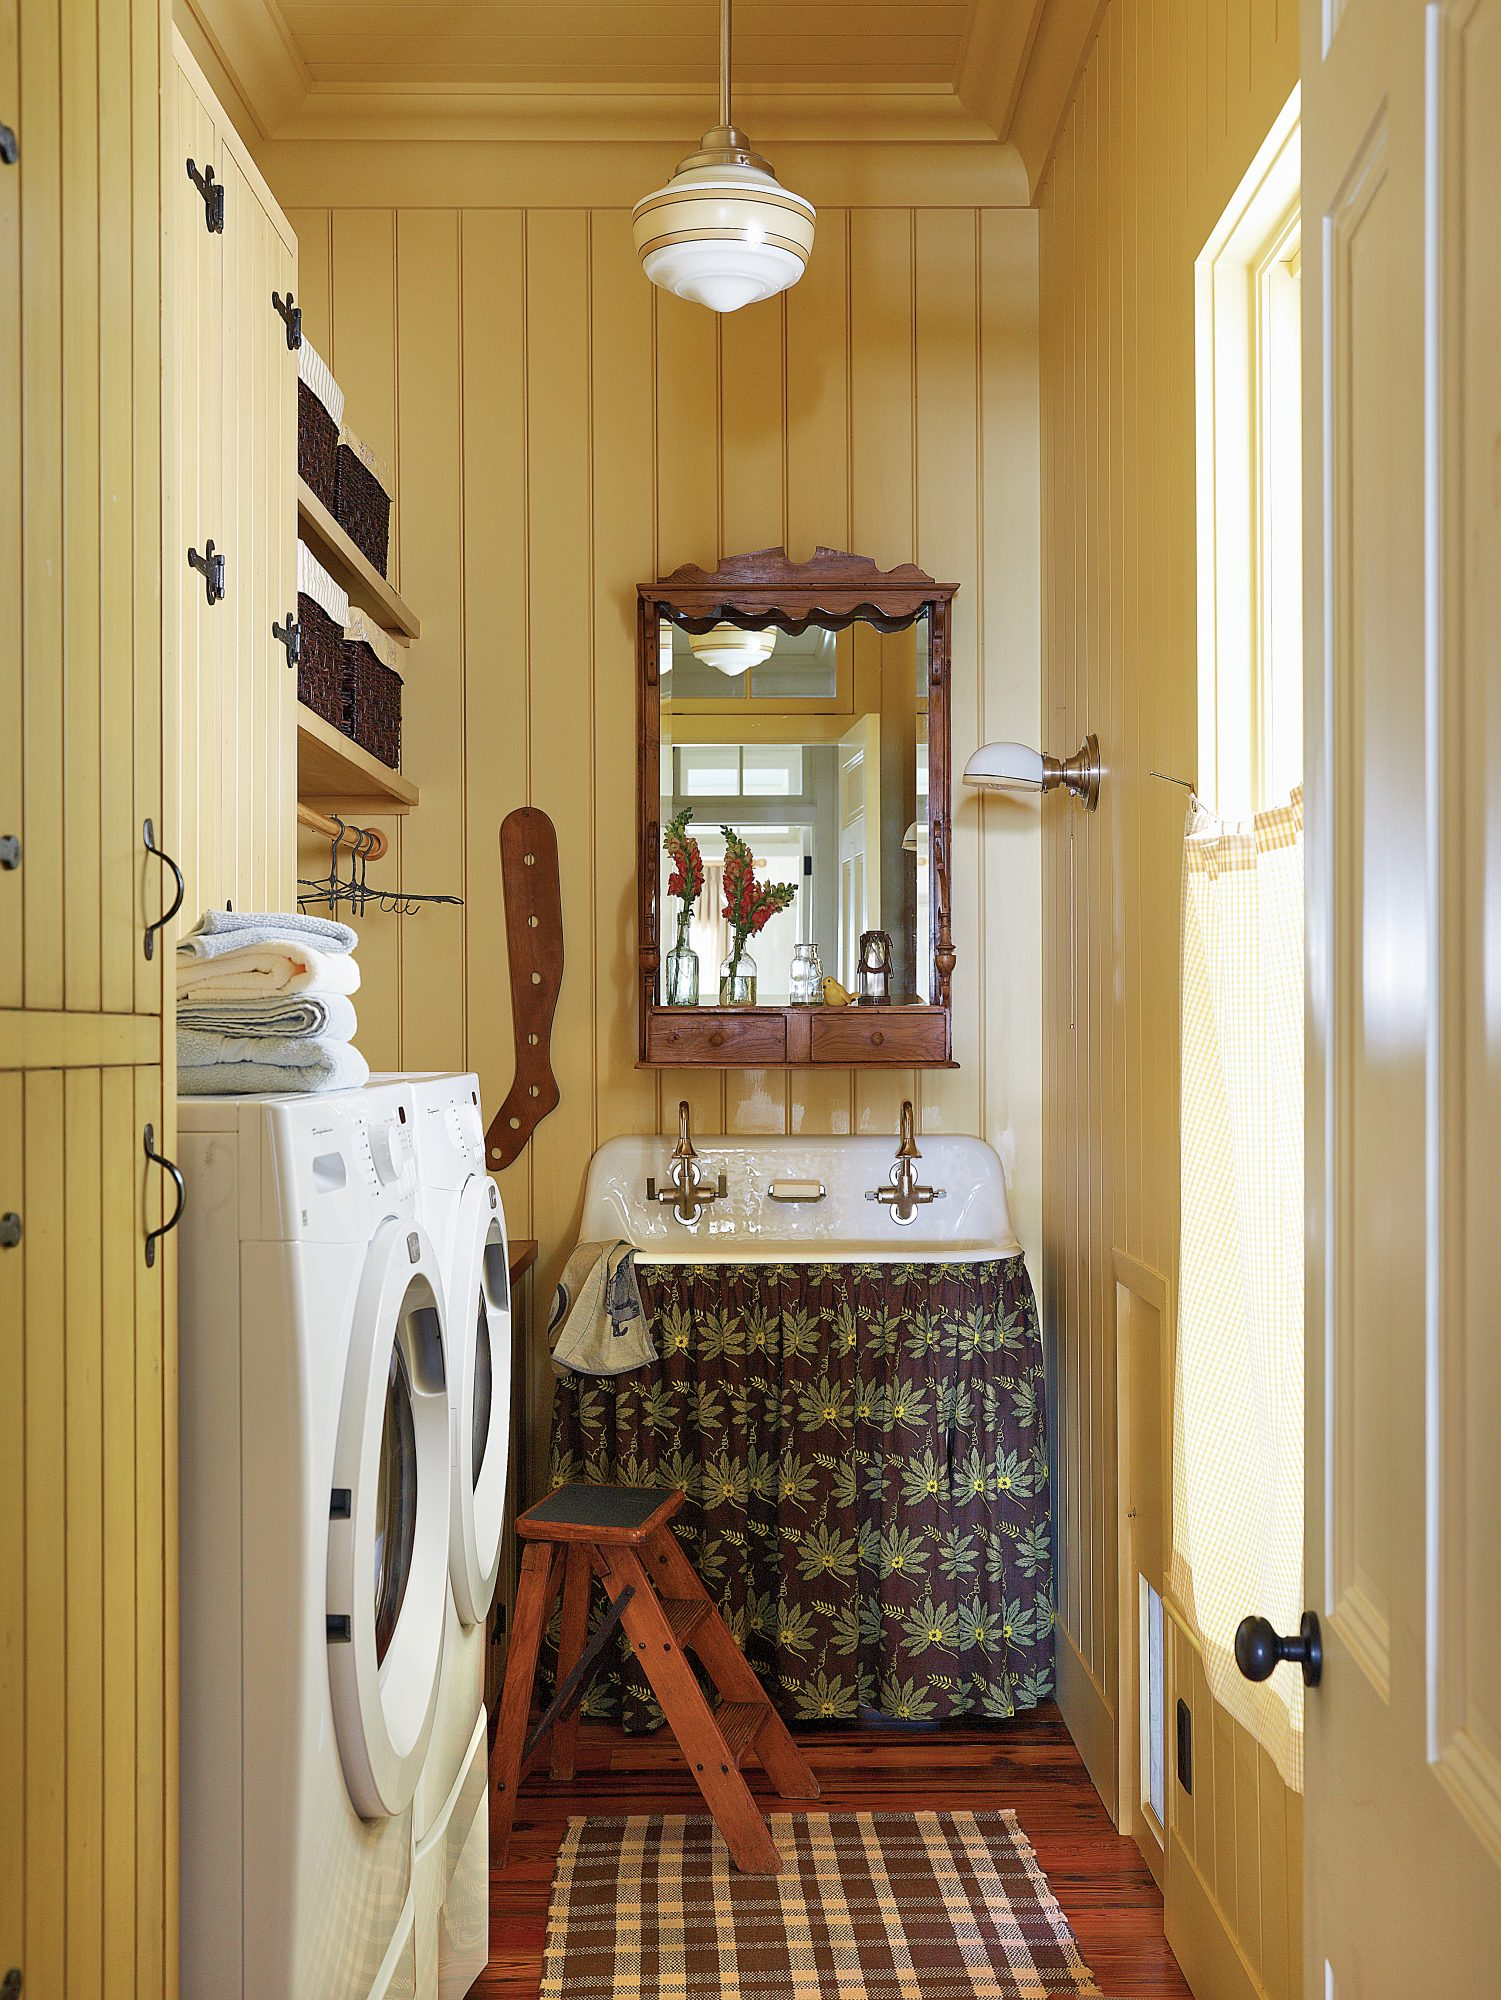 Use All-Over Color in Small Spaces